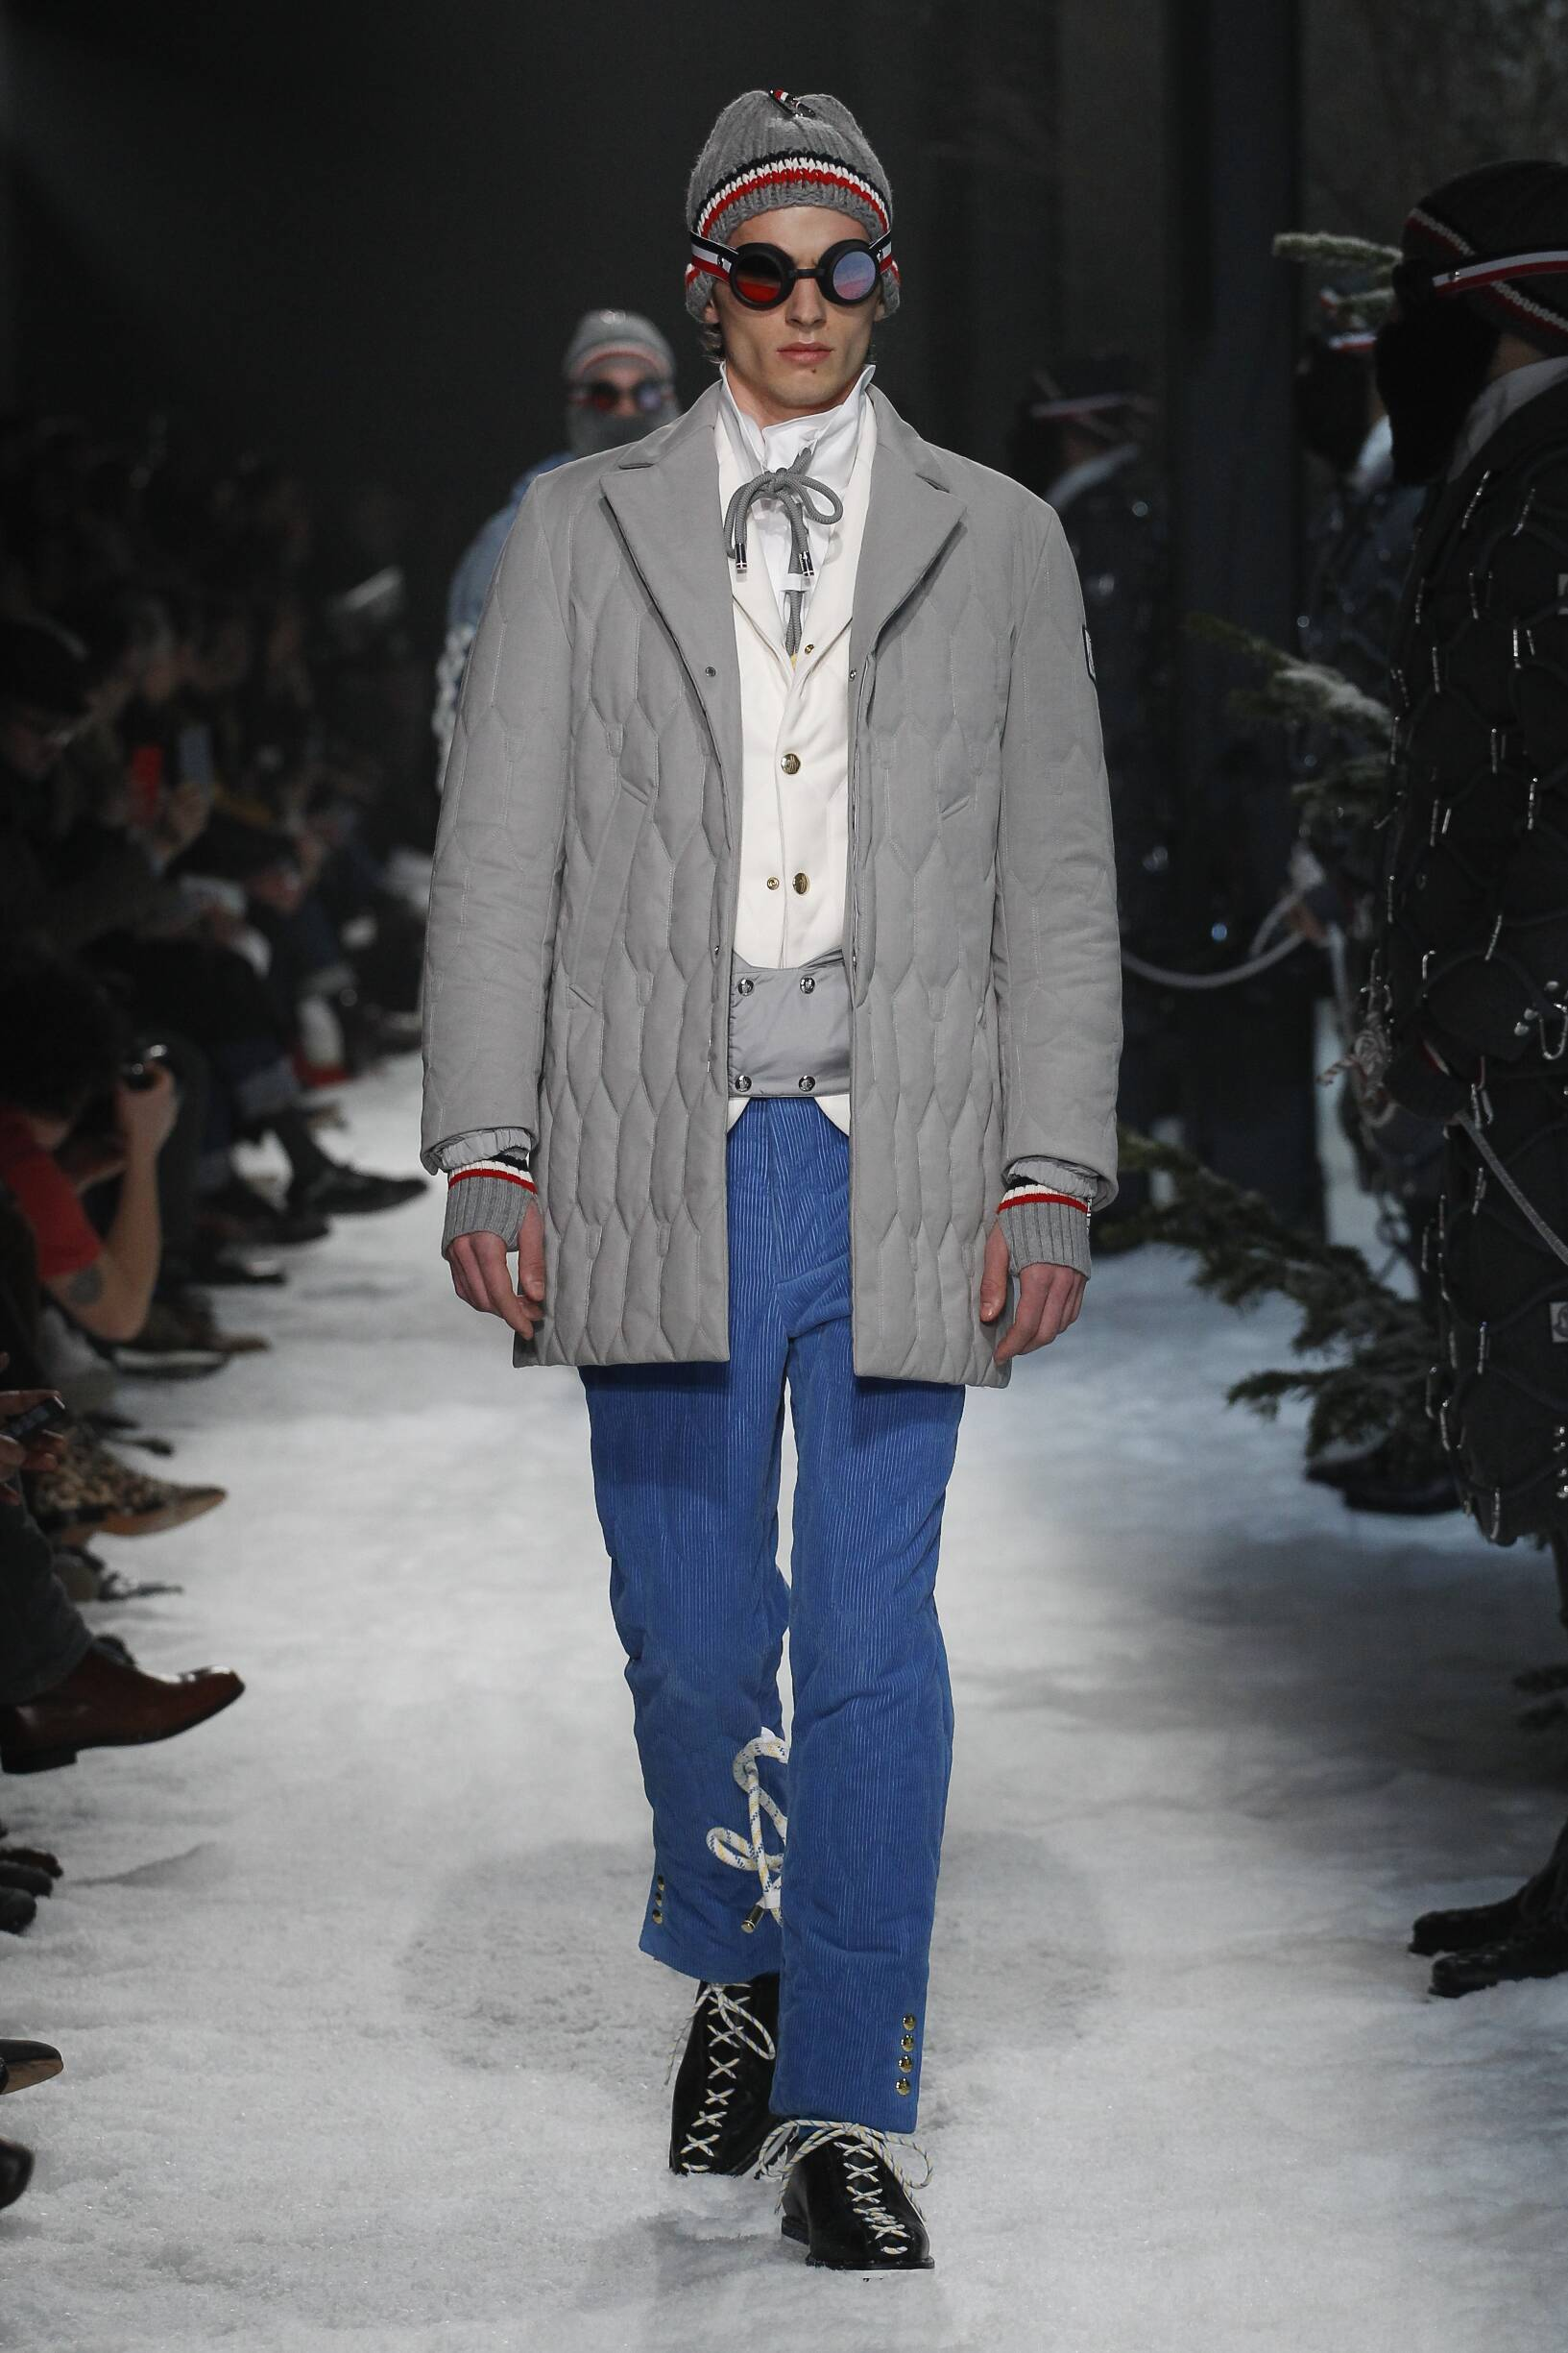 Fashion Model Moncler Gamme Bleu Catwalk